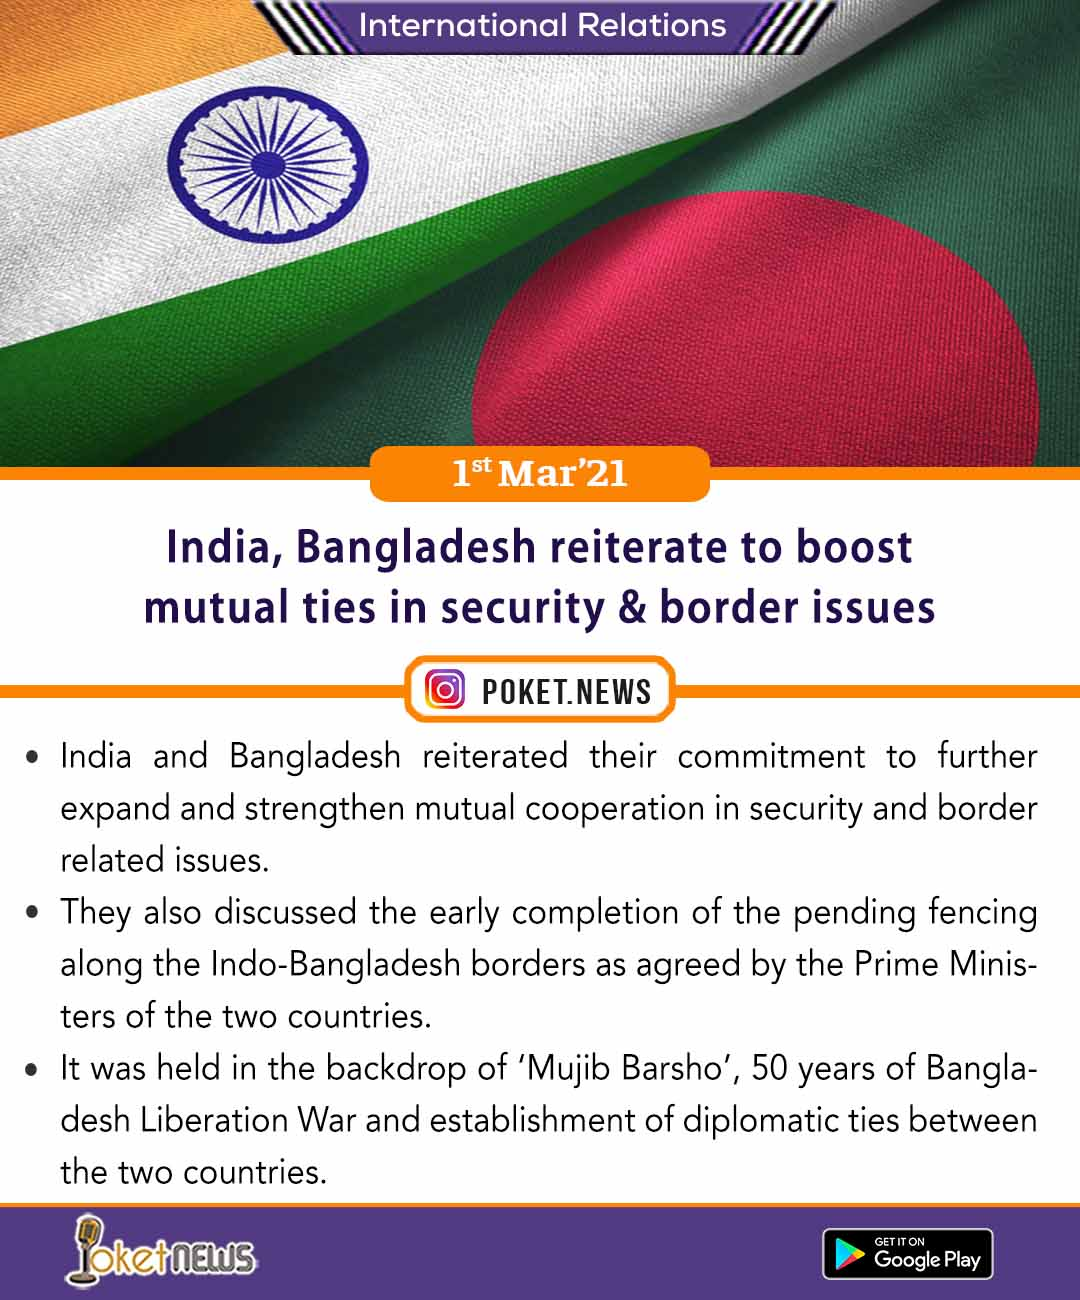 India, Bangladesh reiterate to boost mutual ties in security & border issues